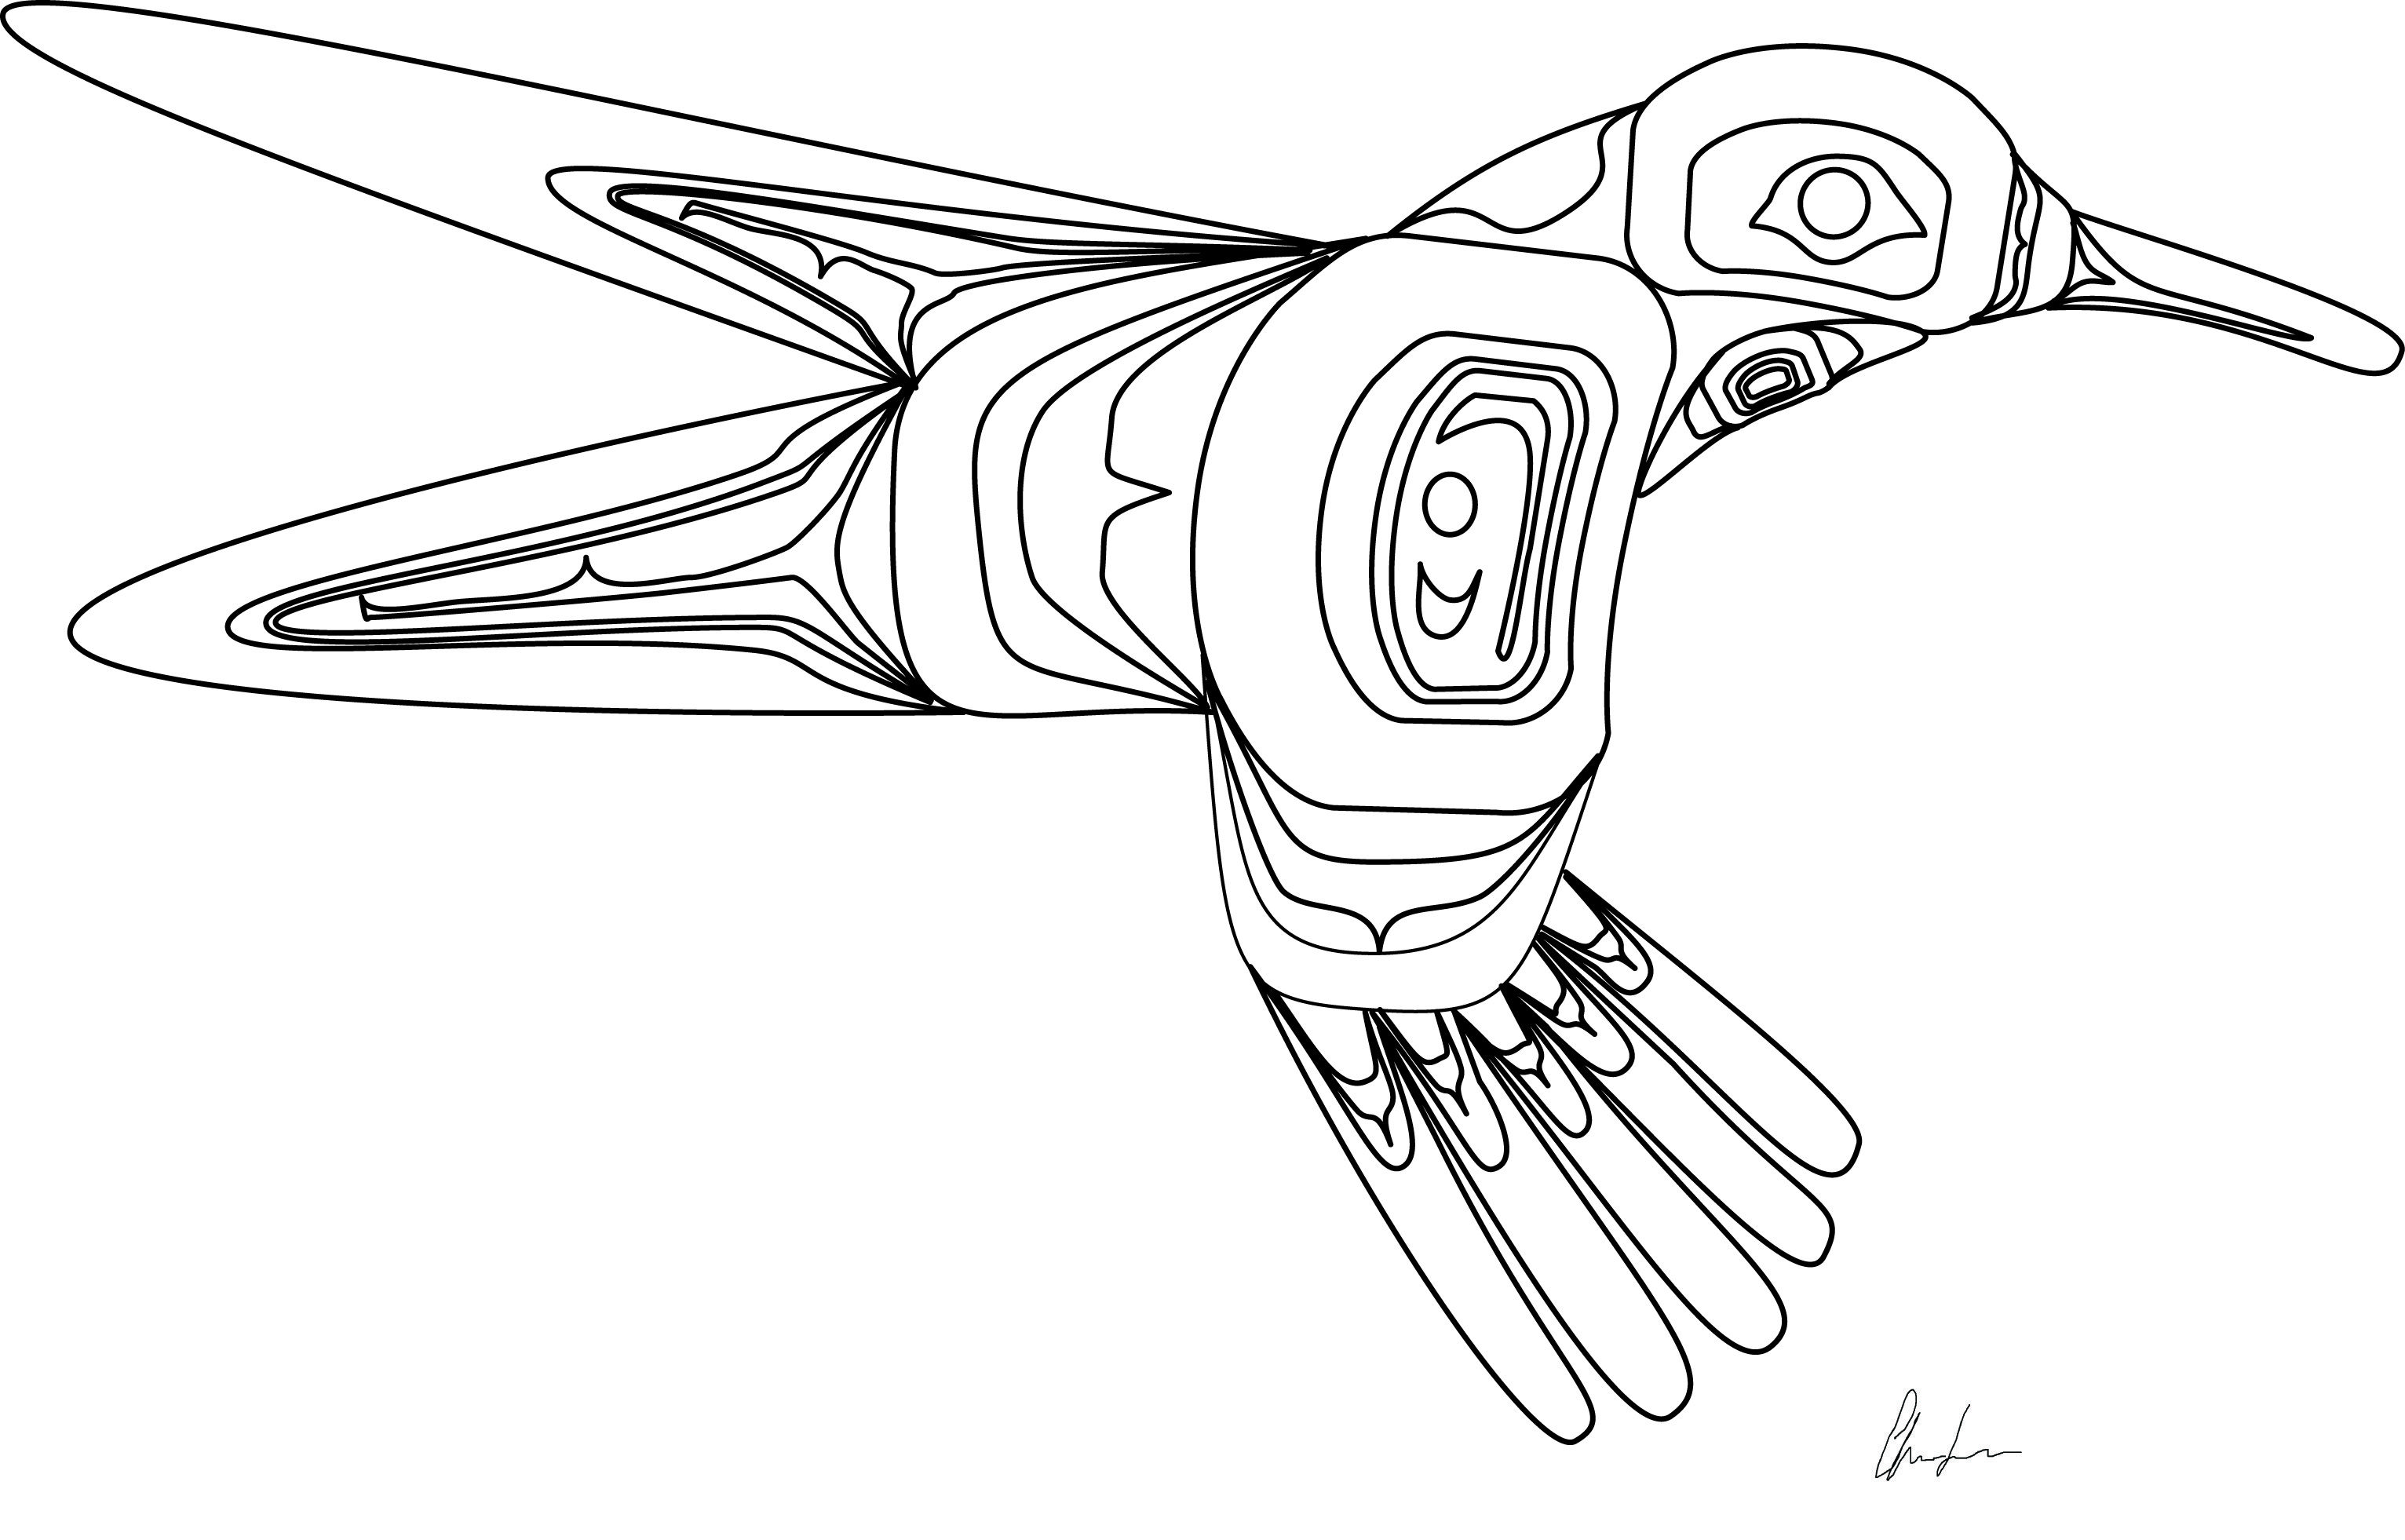 Hummingbird Coloring Book Design Northwest Coast First Nations Style By Charrine Naziel Lace Designs Coloring Books Native American Art Coloring Pages